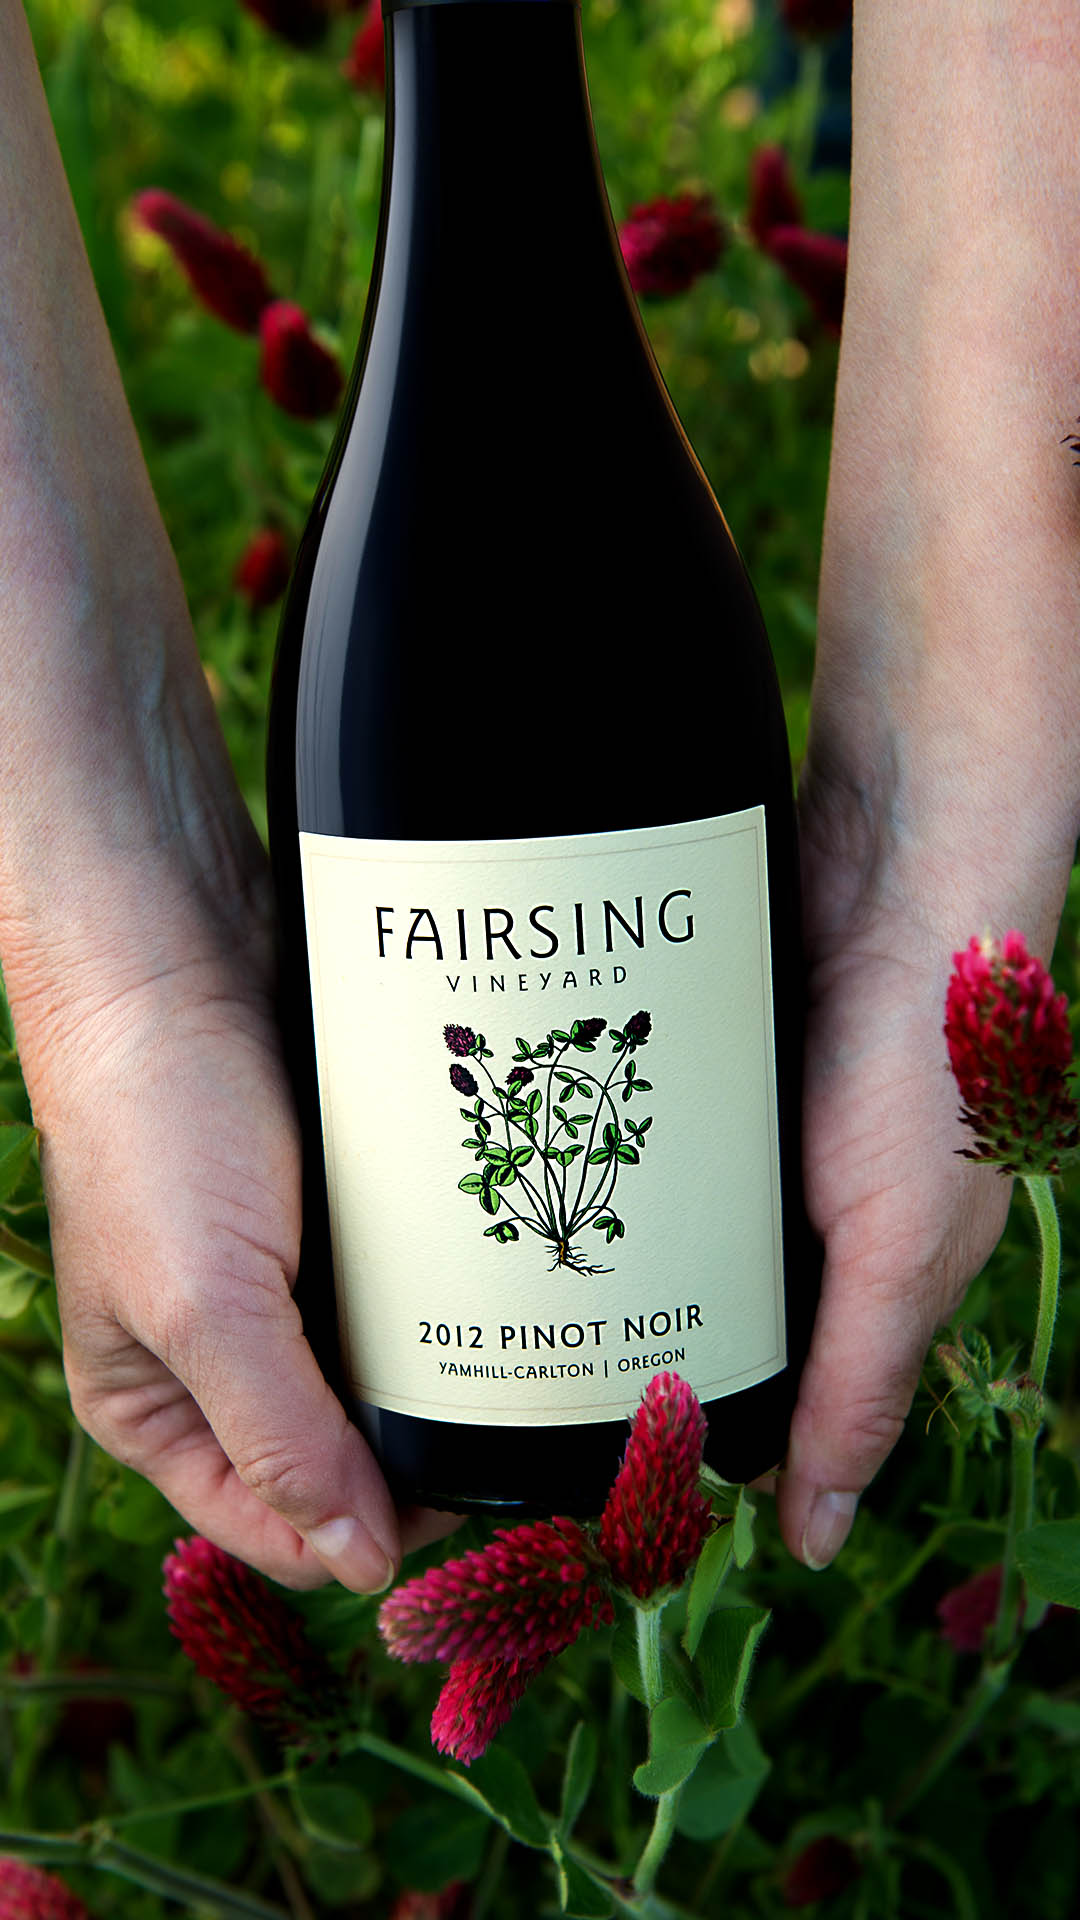 Hands hold a bottle of Fairsing Vineyard Pinot noir with crimson clover on the label surrounded by a blooming clover crop in the vineyard